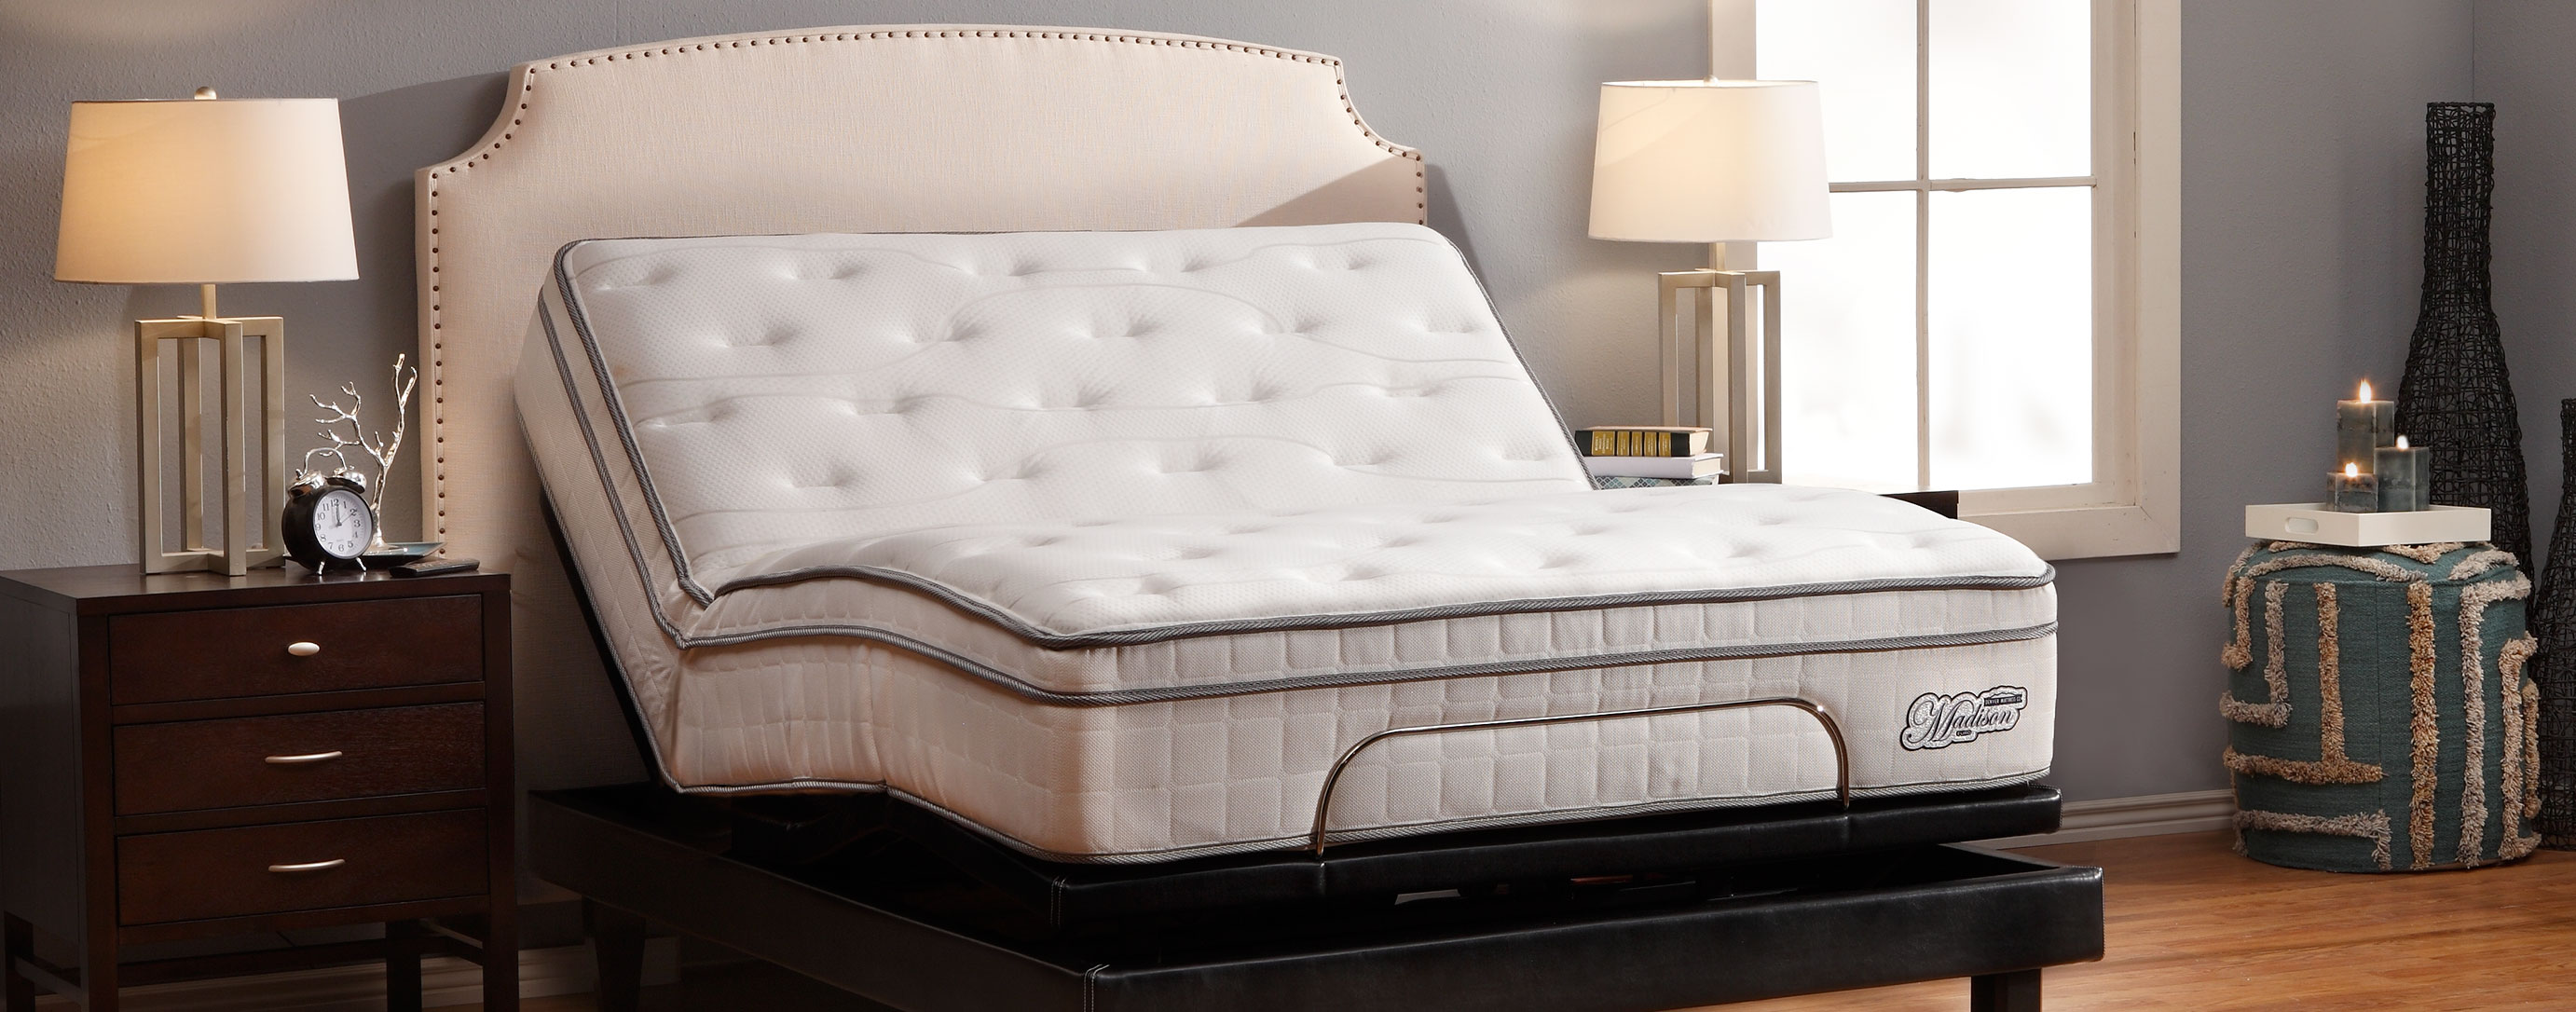 Denver Mattress Company image 8